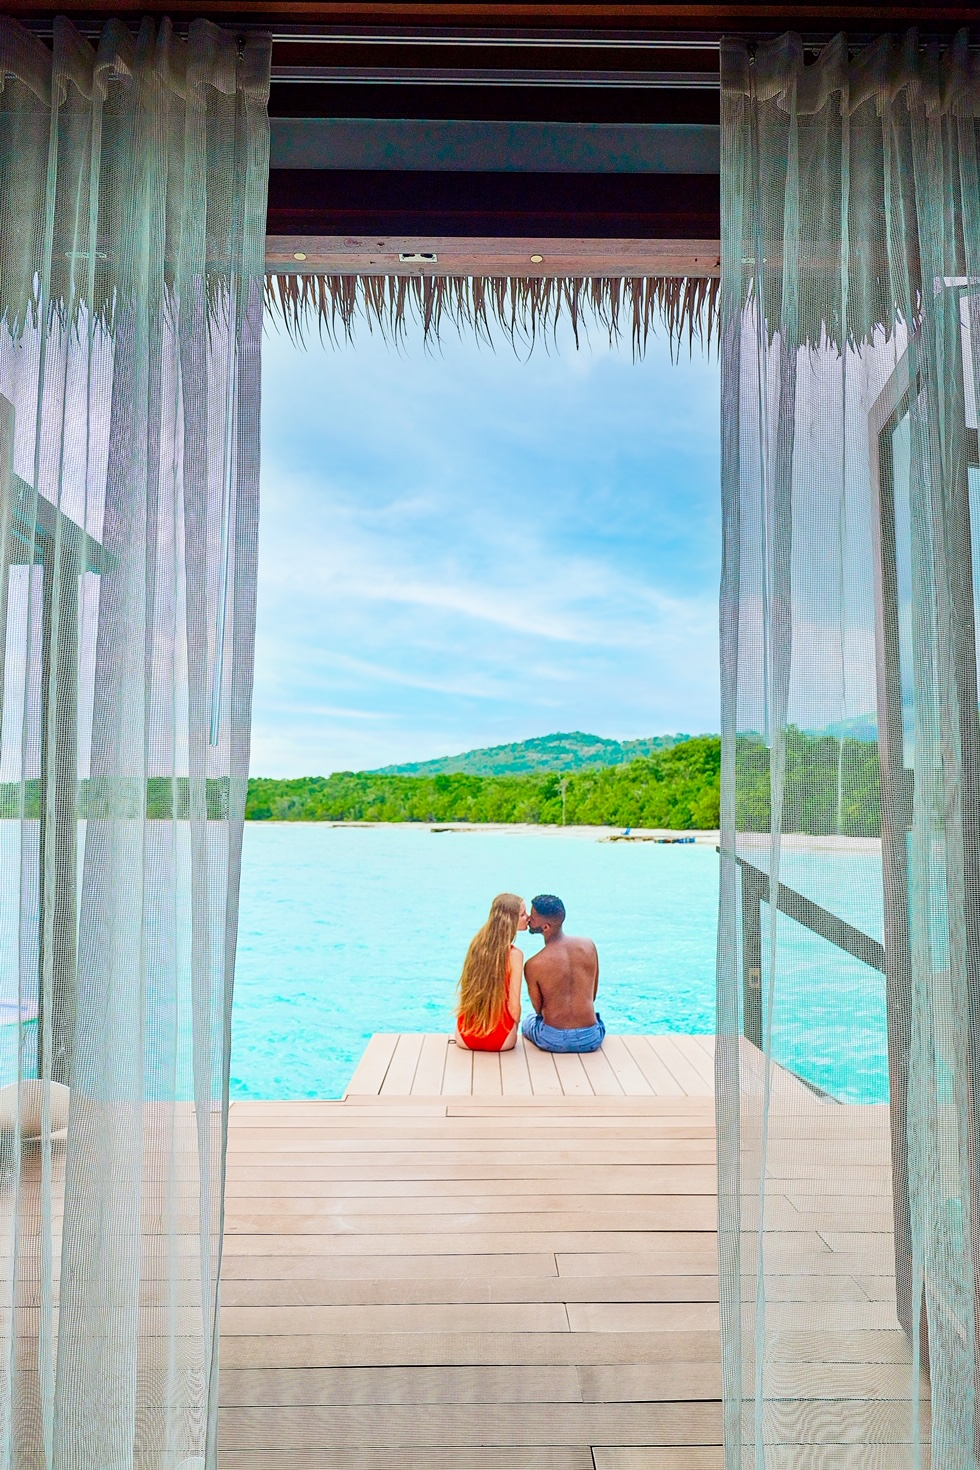 A couple sitting and kissing on the deck of an overwater bungalow with a view of the ocean and mountains